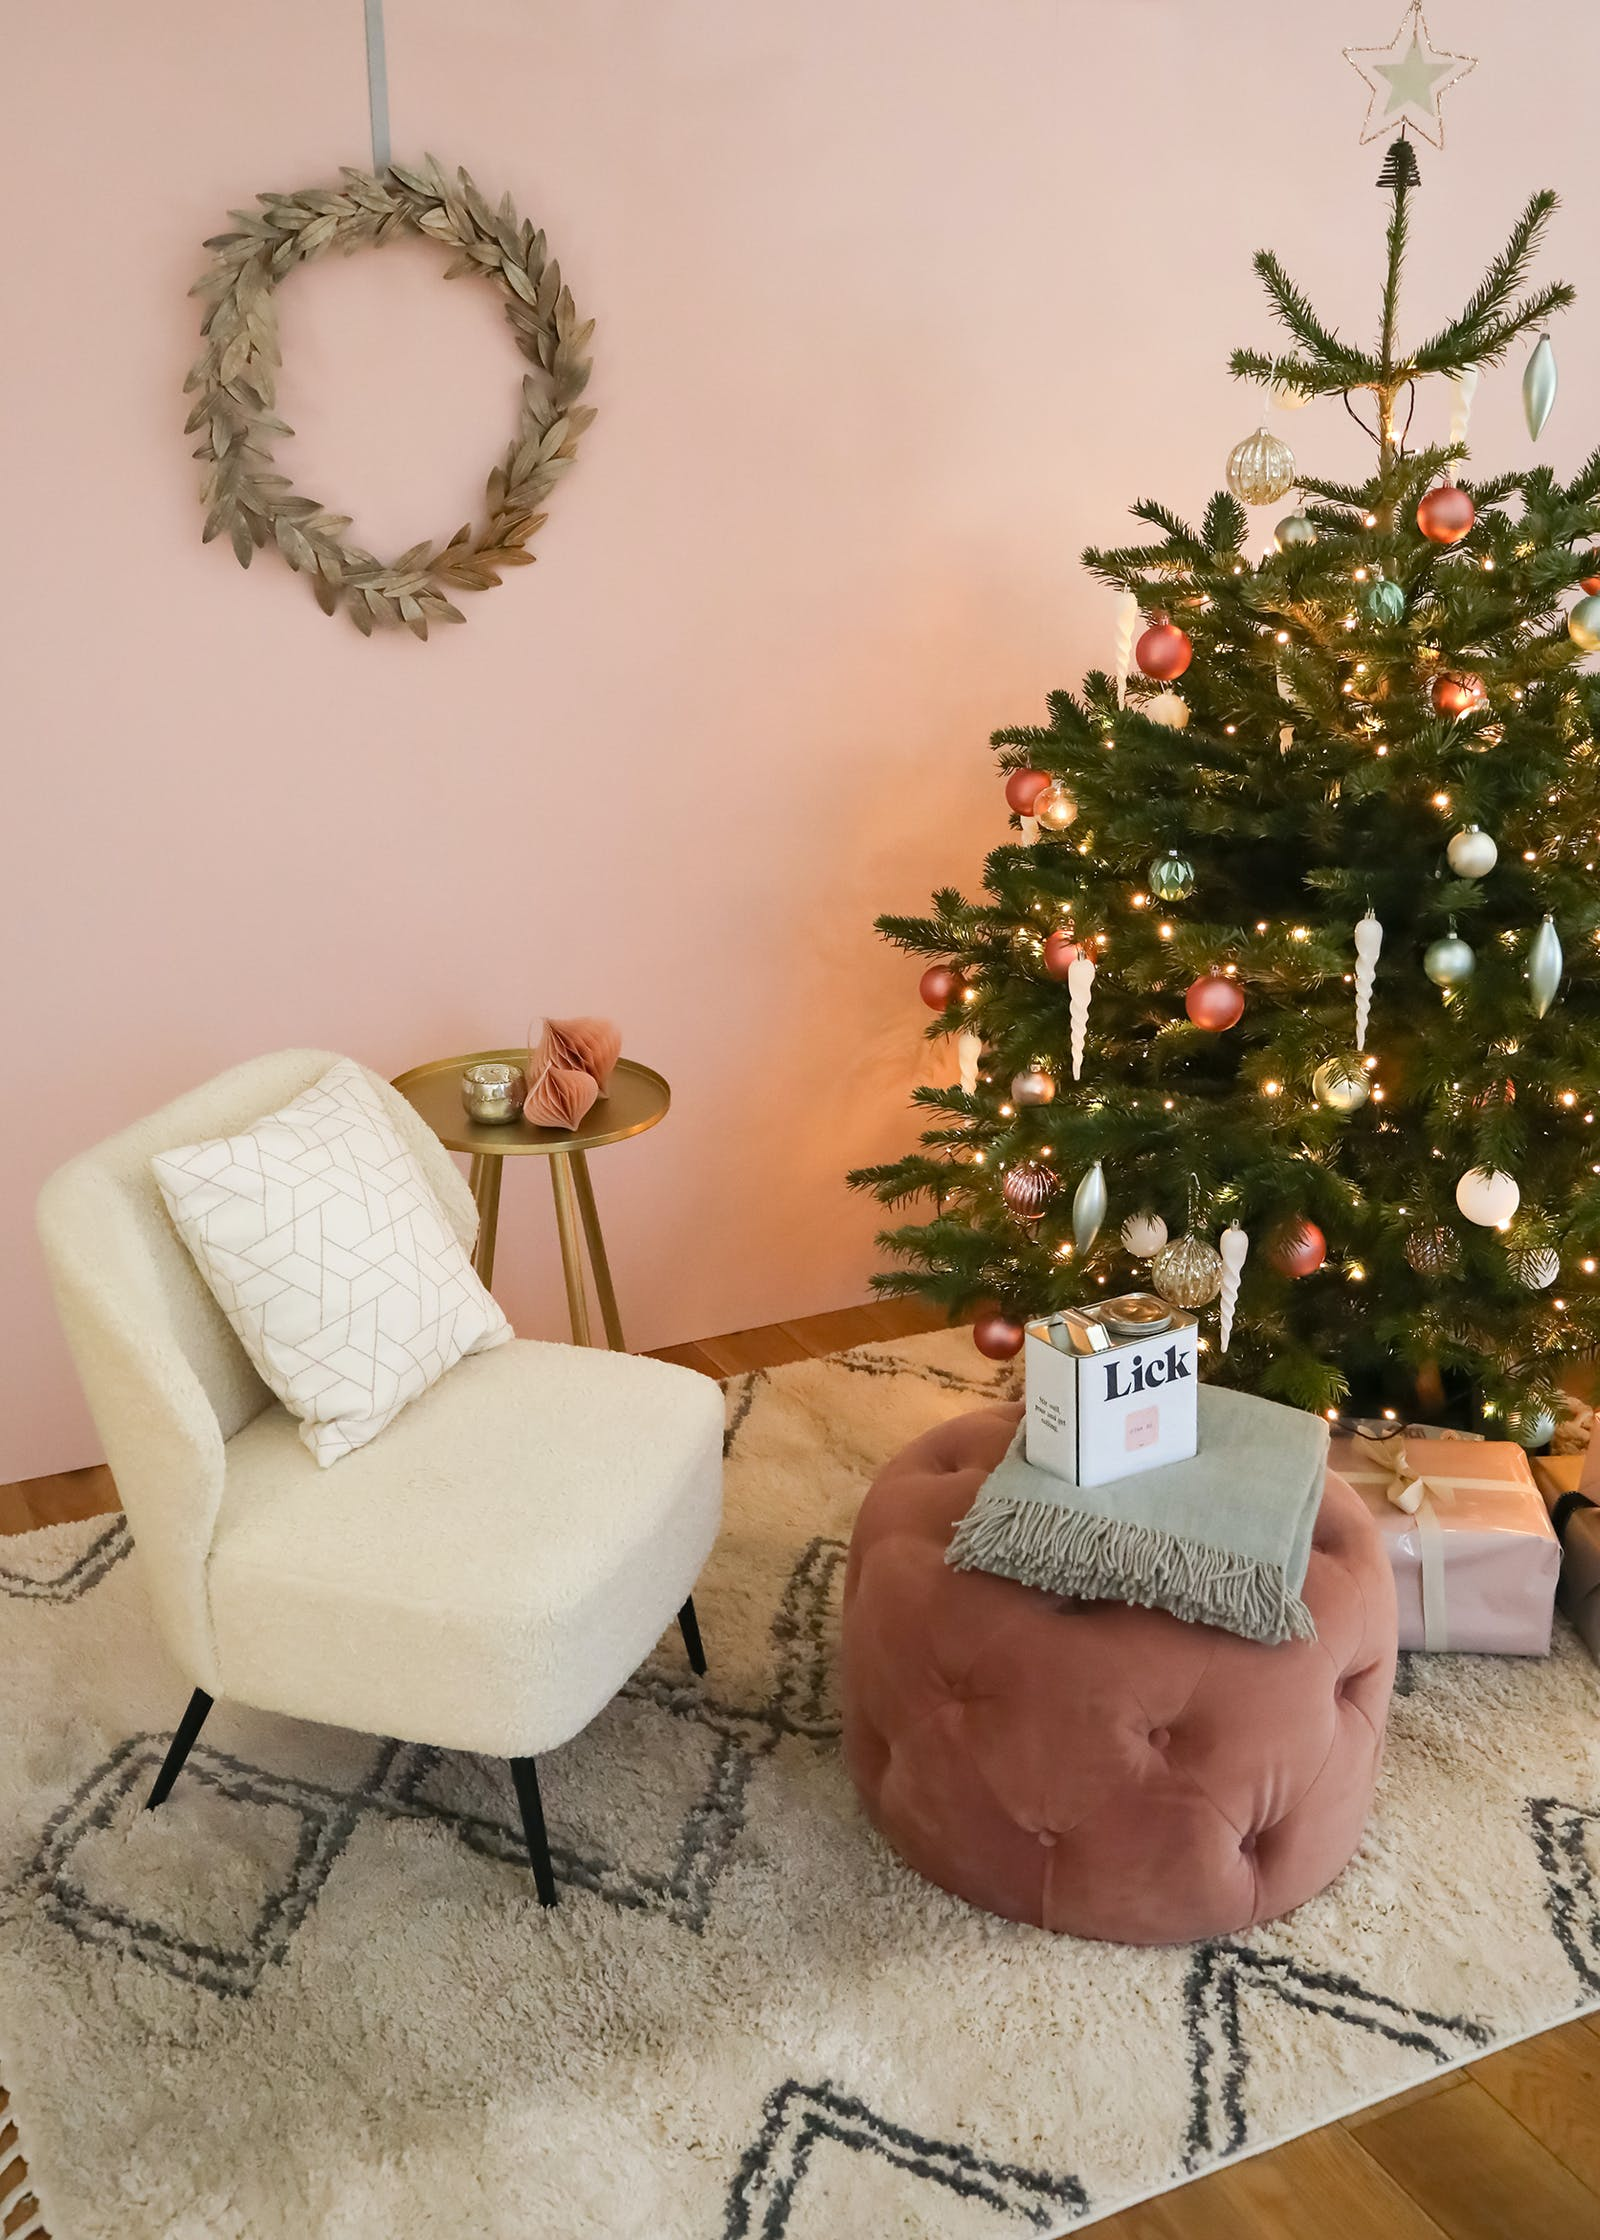 Christmas tree decorated in pastel coloured baubles against Lick Pink 03 wall